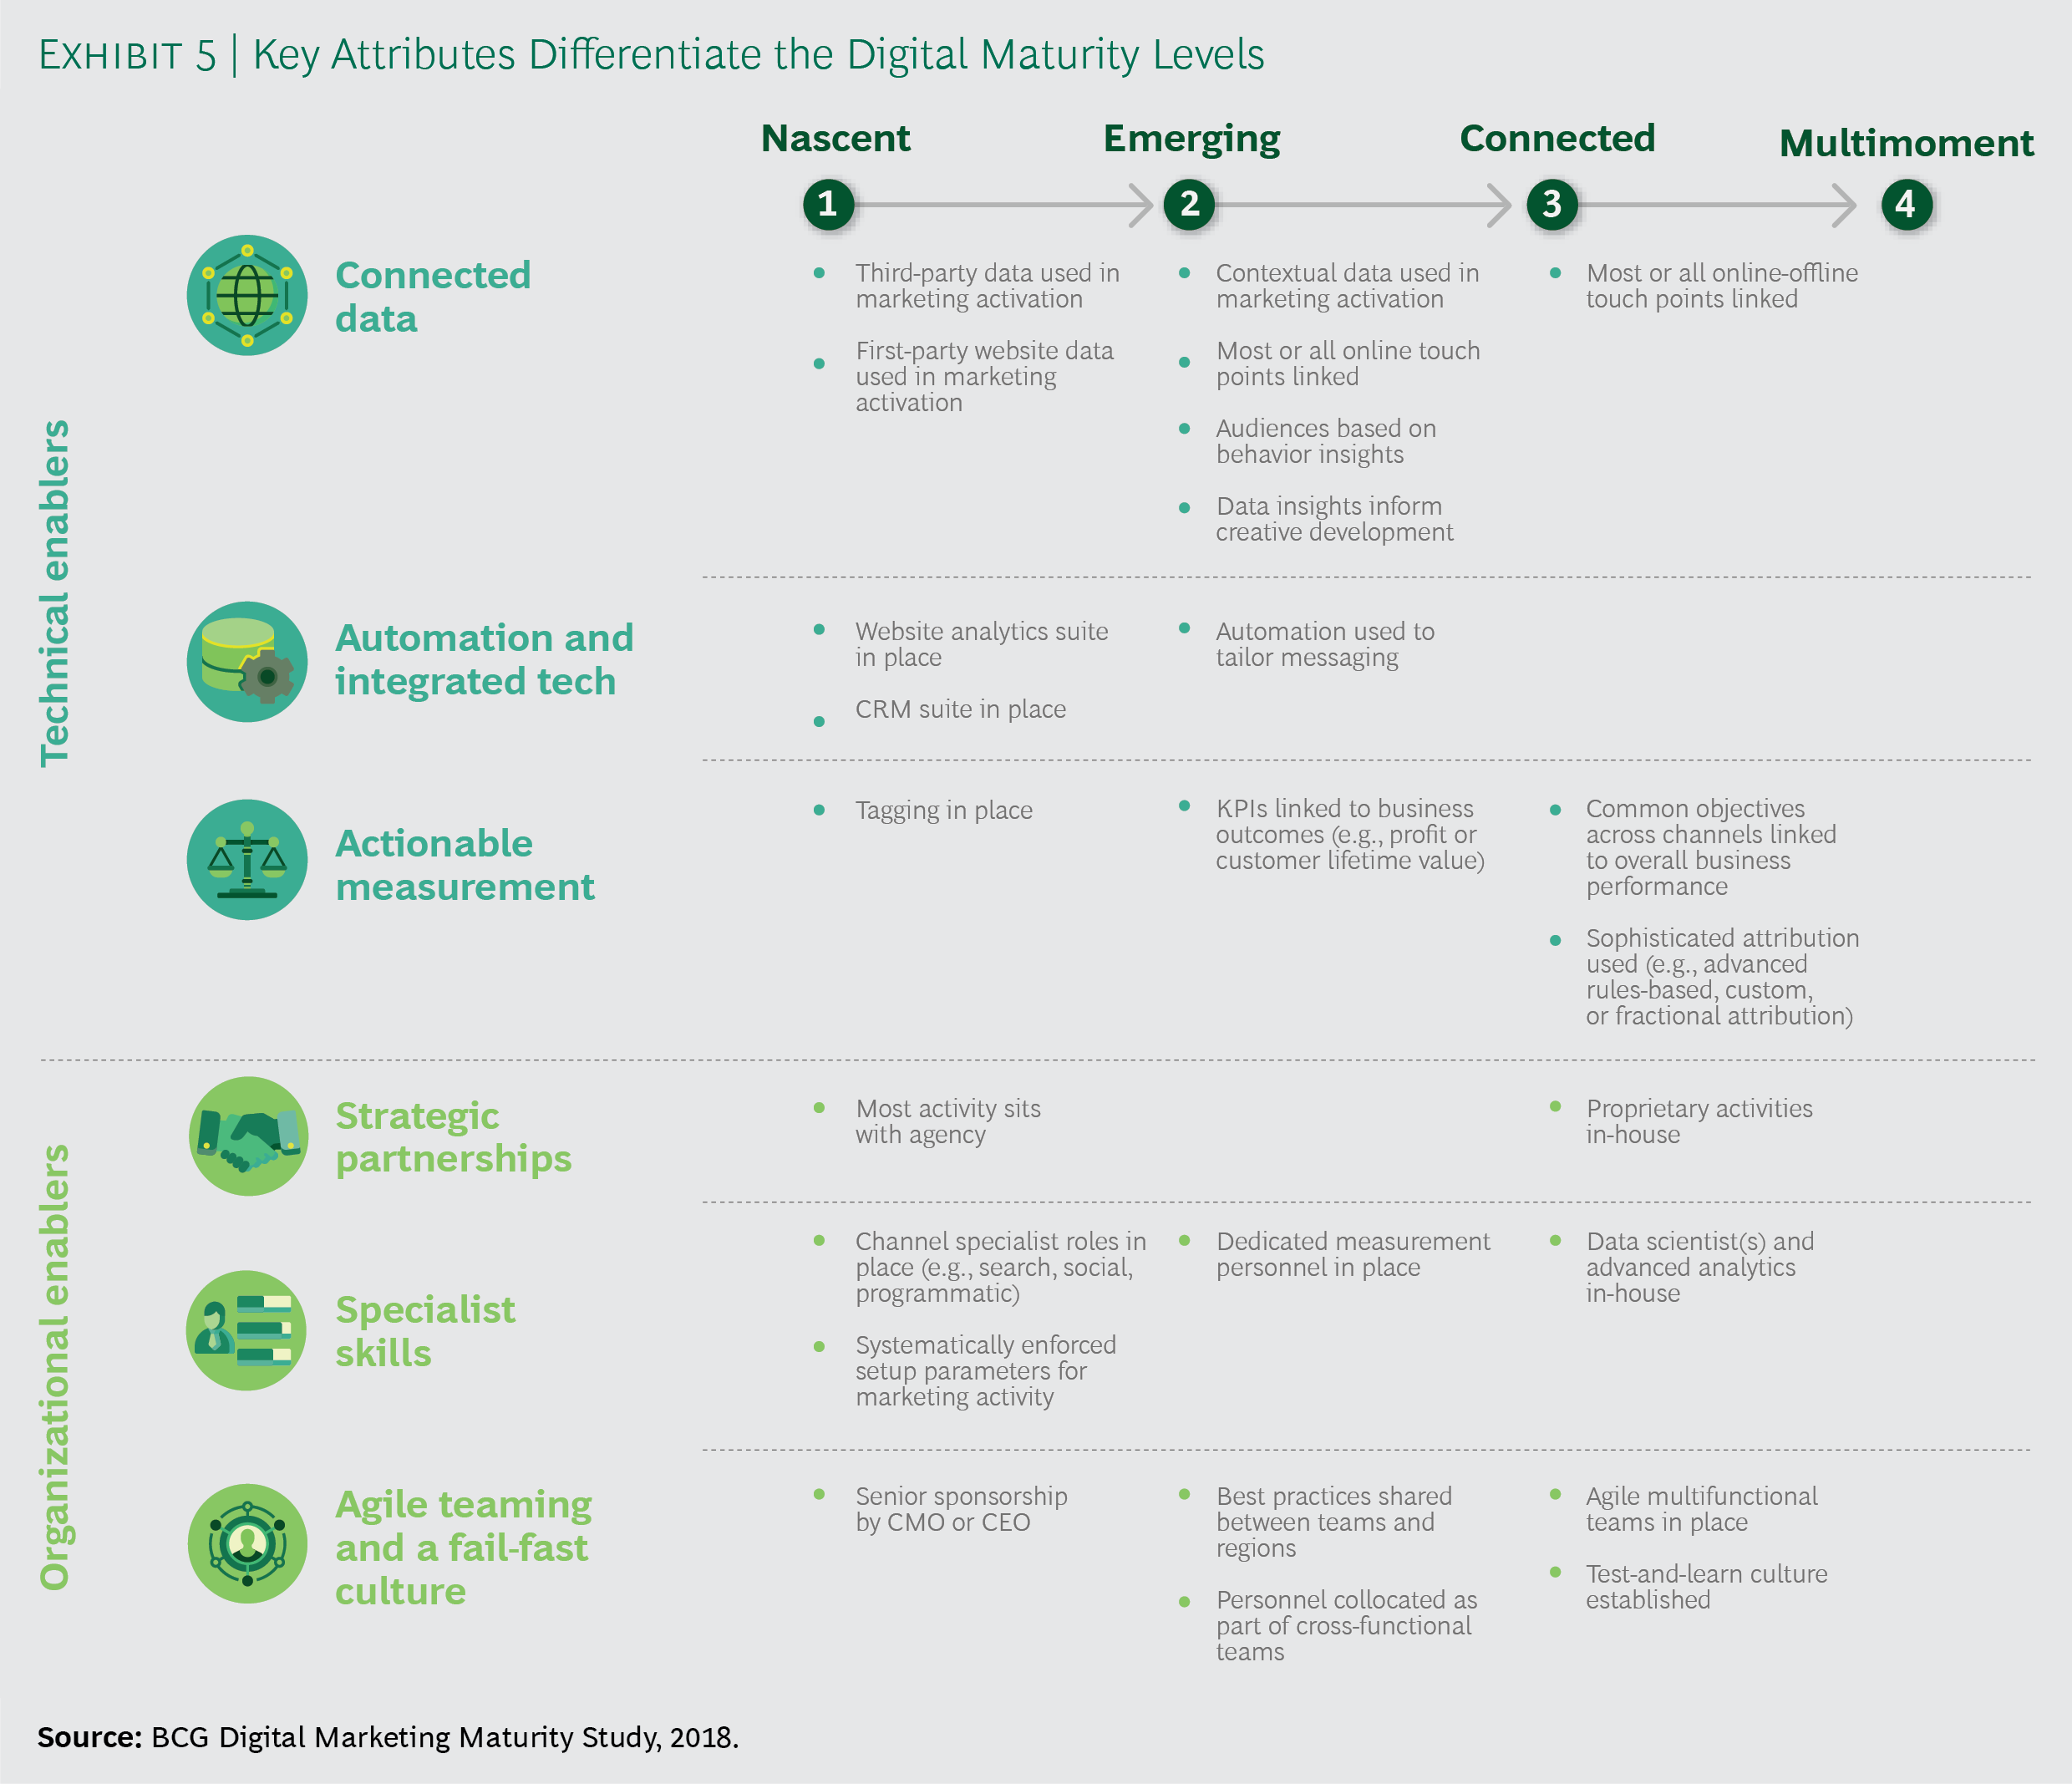 Key Attributes Differentiate the Digital Maturity Levels